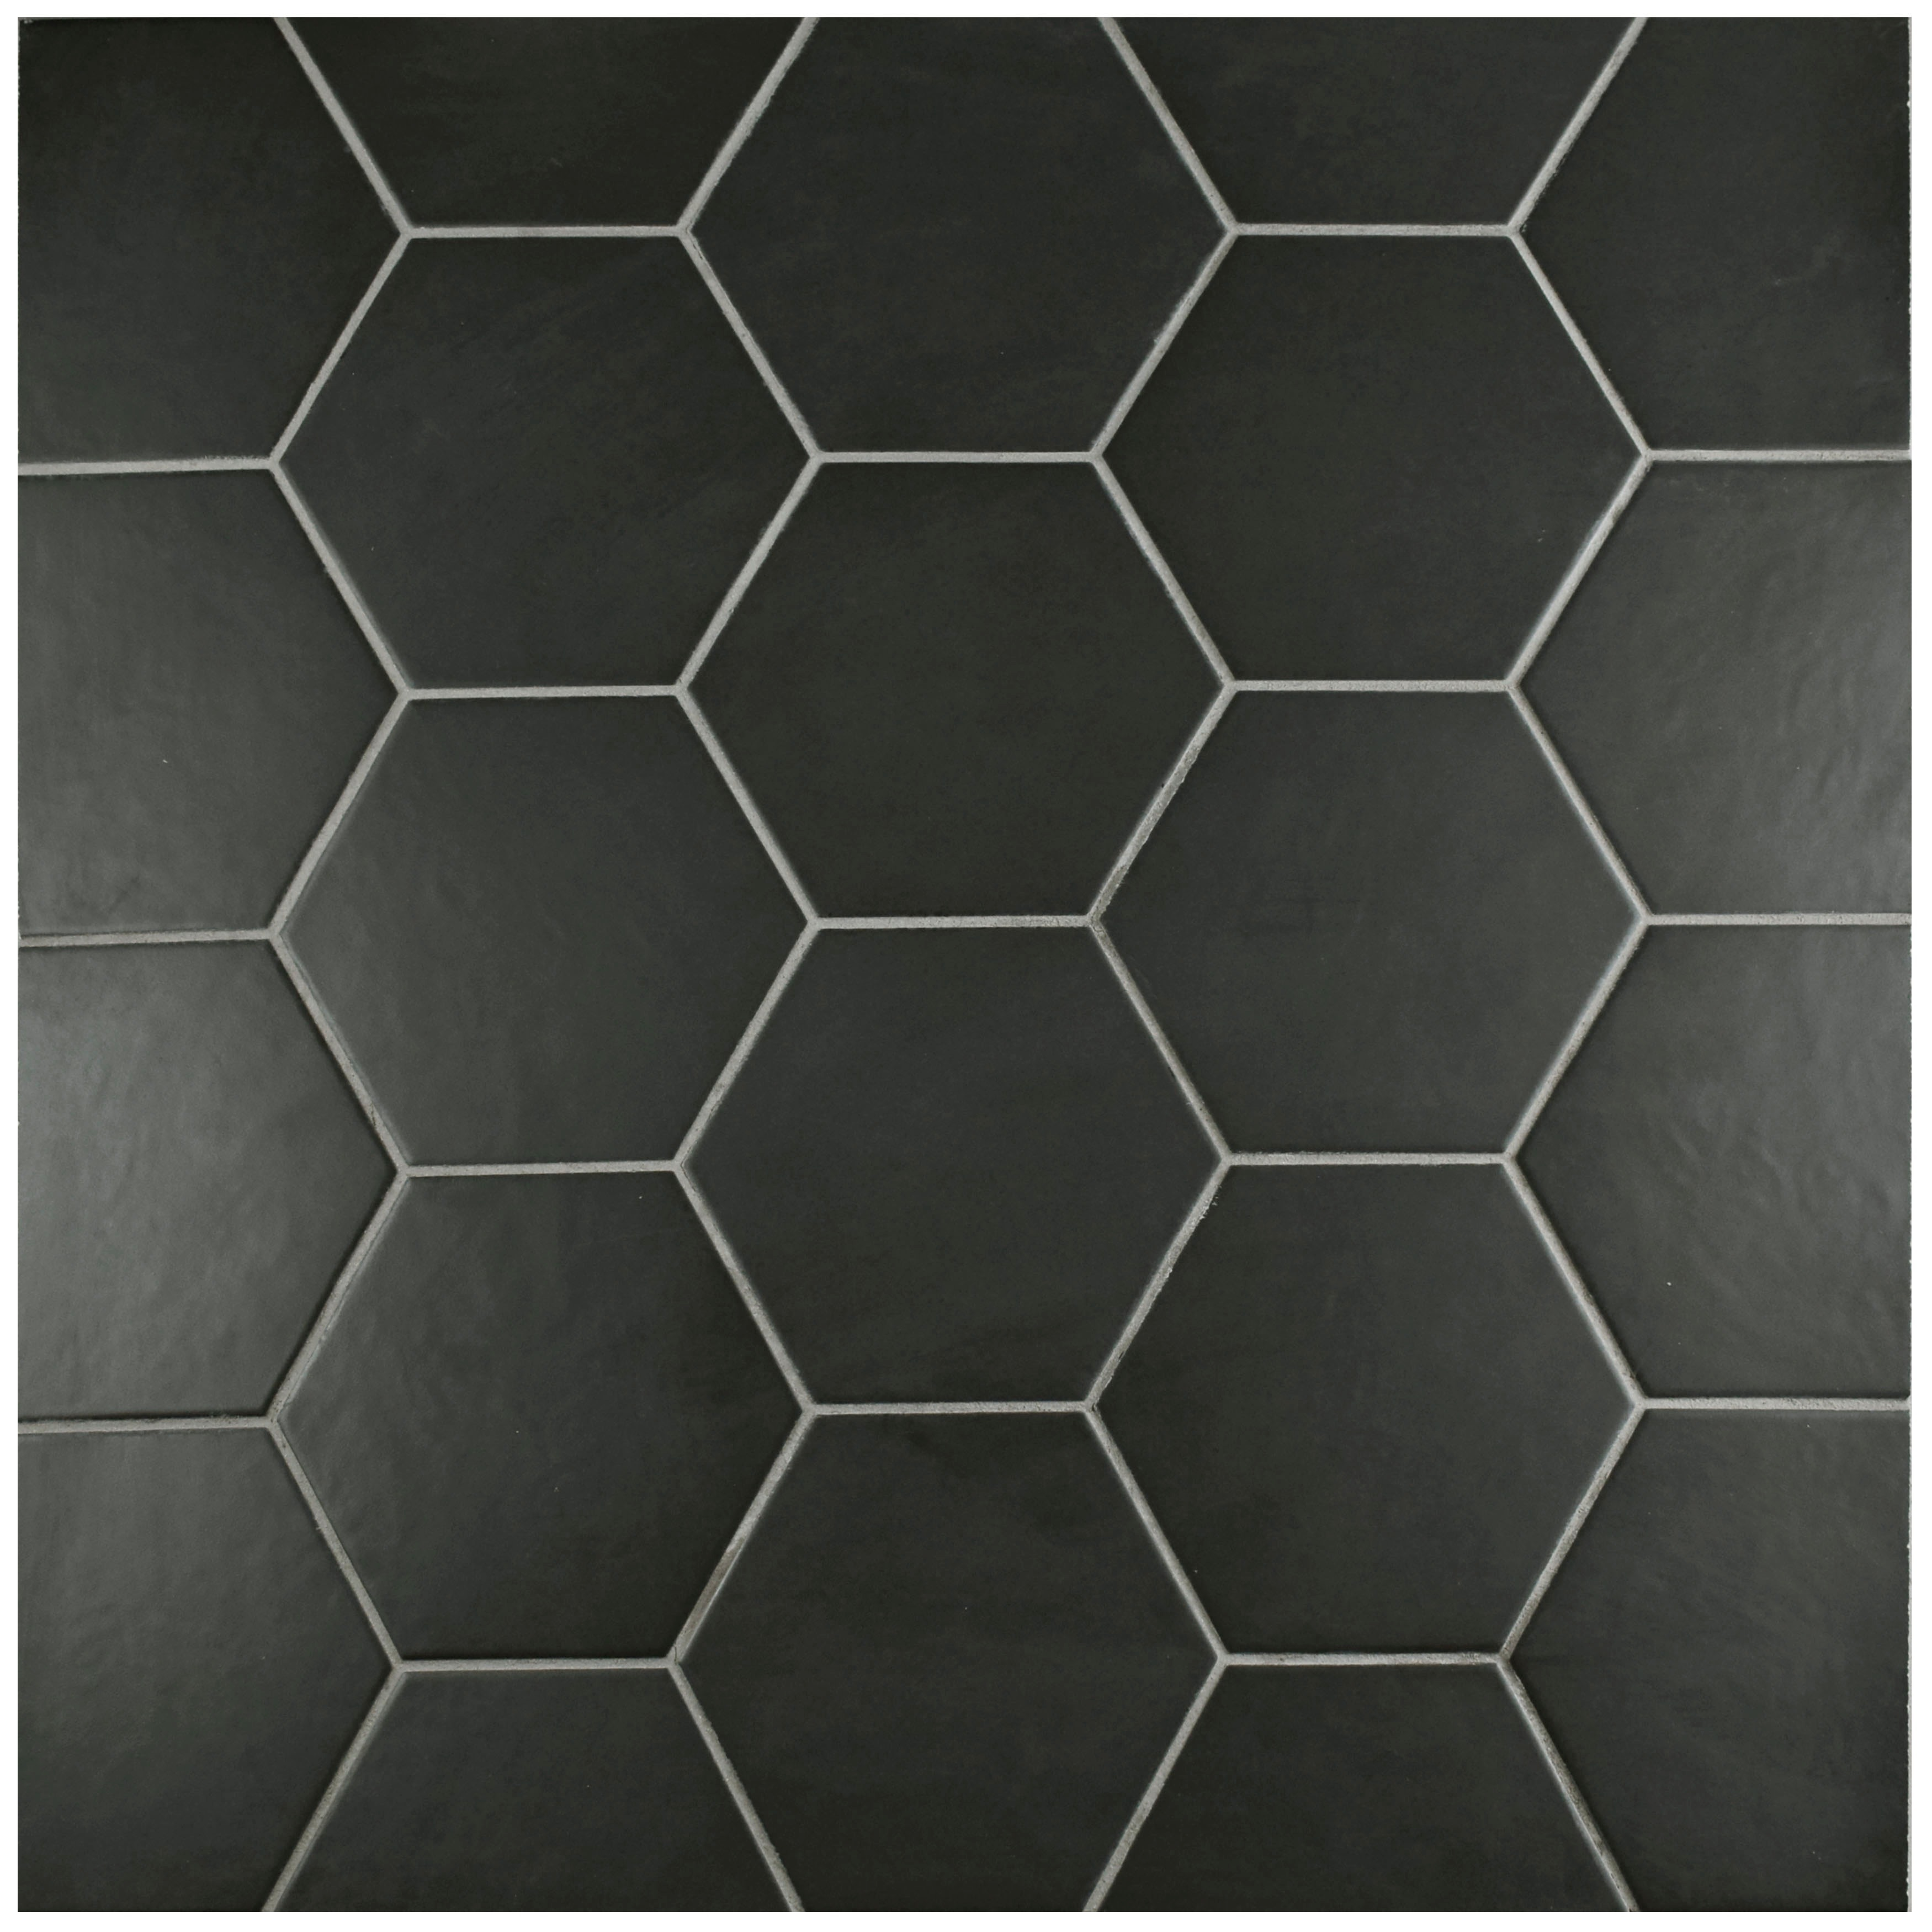 Somertile 7x8 inch hextile matte nero porcelain floor and wall somertile 7x8 inch hextile matte nero porcelain floor and wall tile 14 tiles44 sqft free shipping on orders over 45 overstock 15742538 dailygadgetfo Image collections